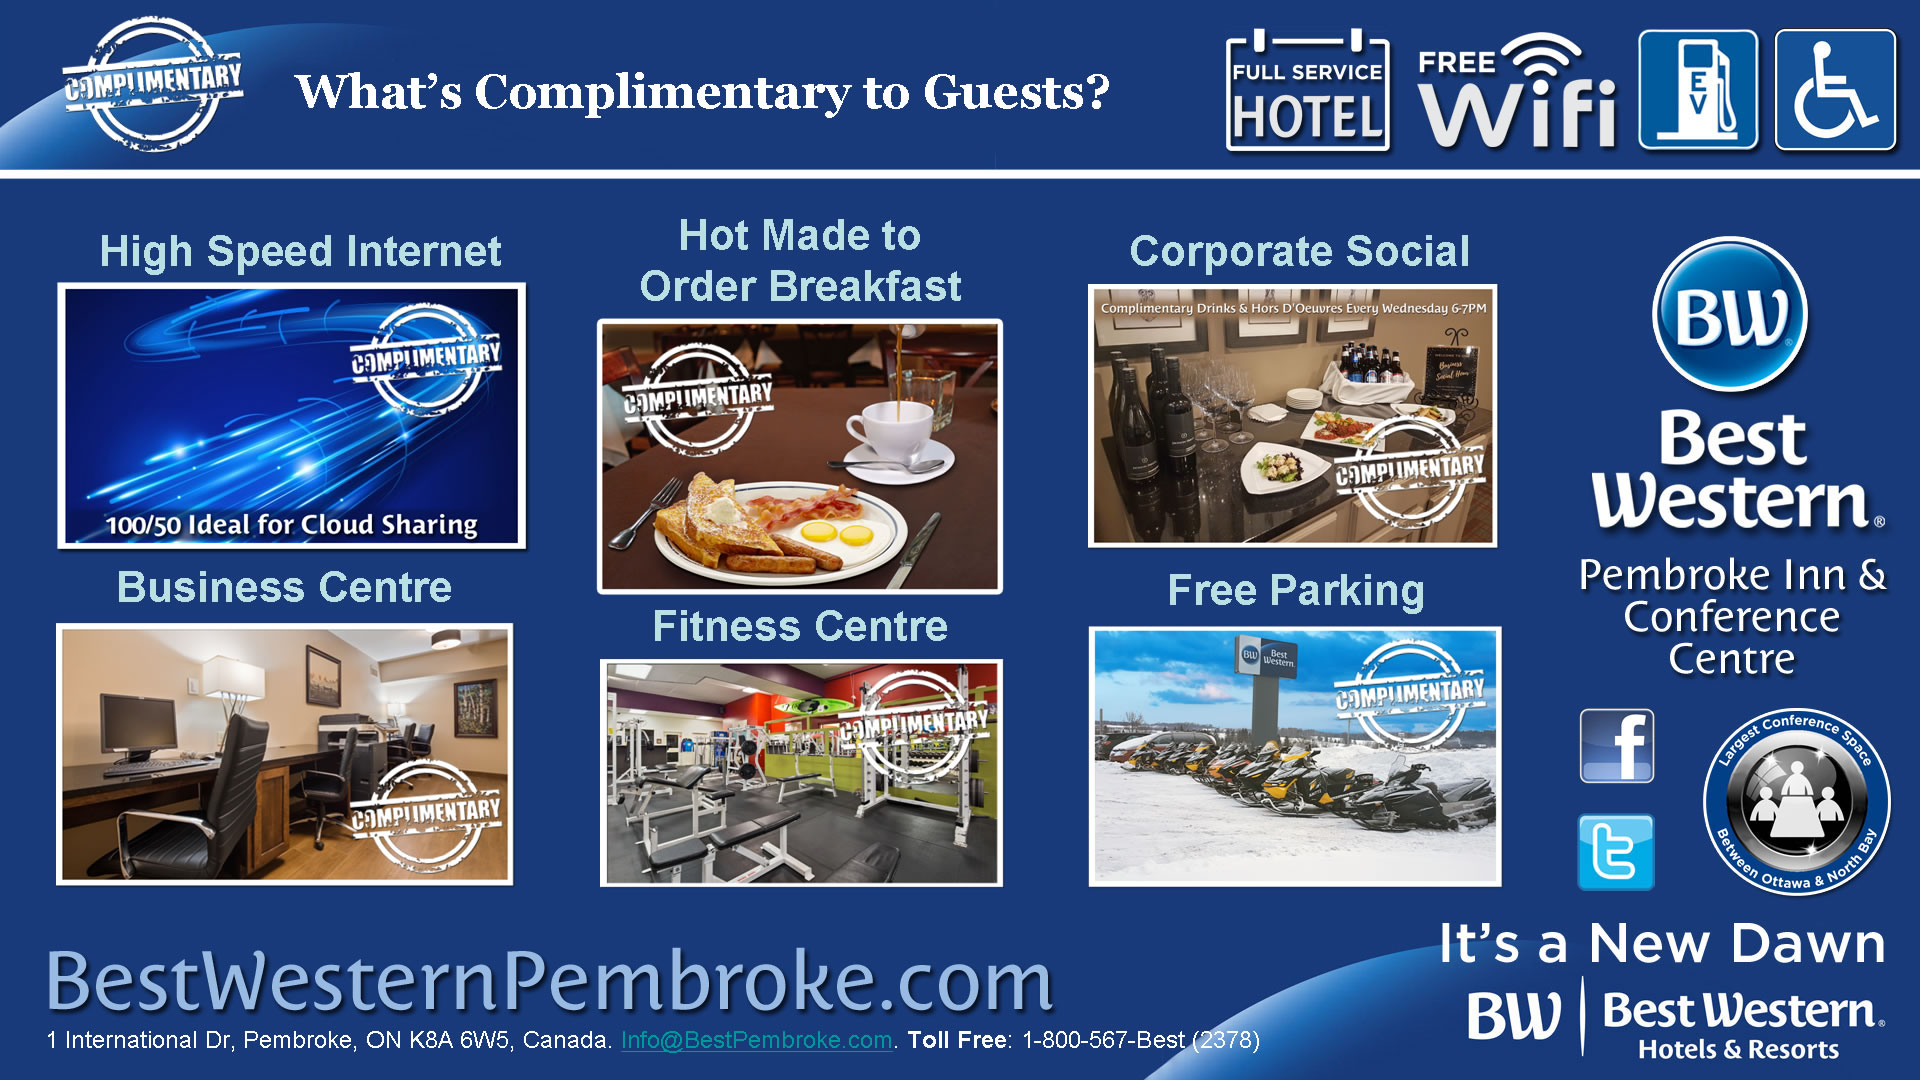 What's Complimentary?